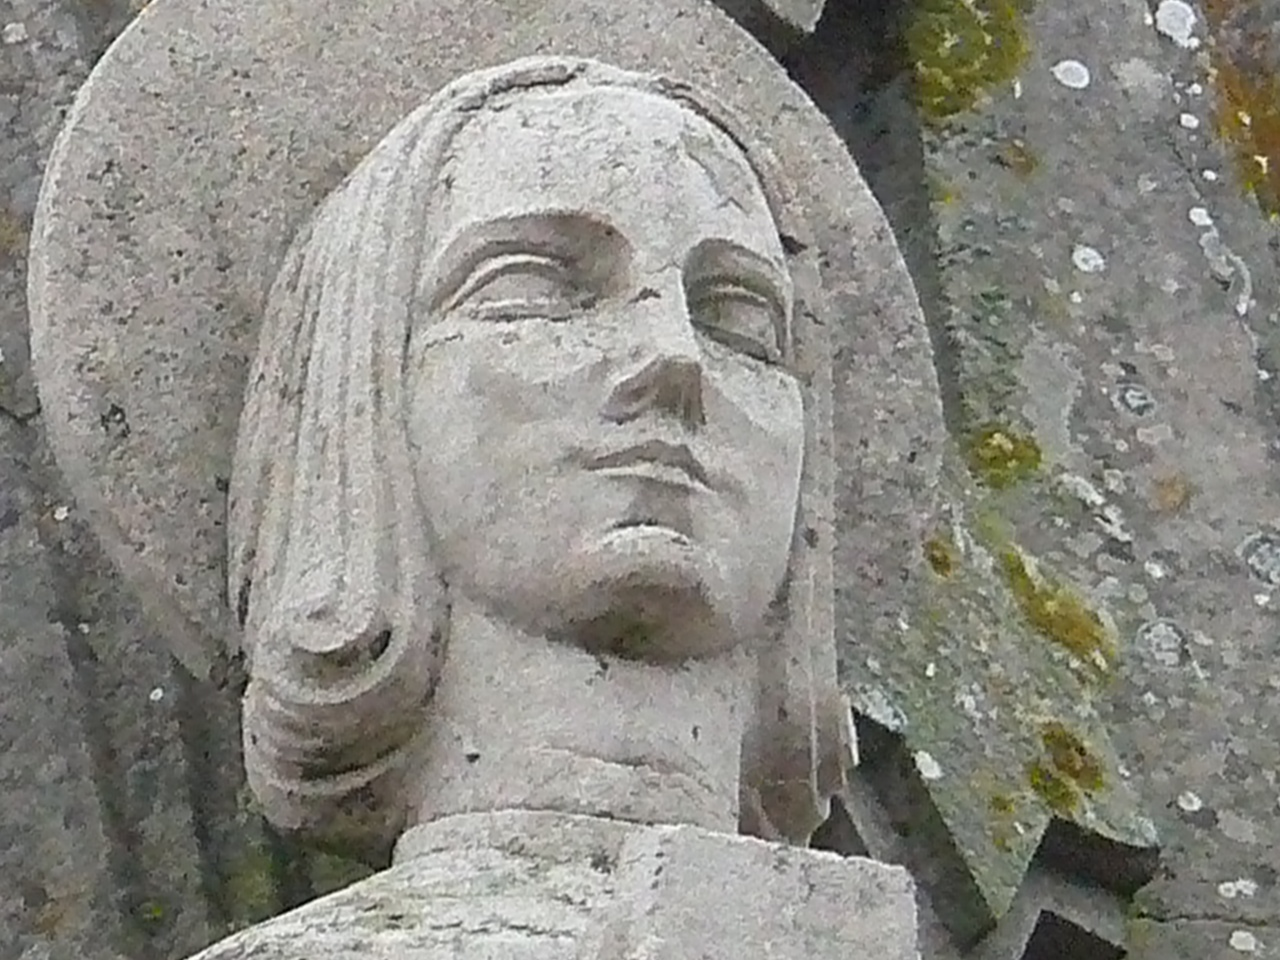 détail d'un des saints qui ornent le clocher